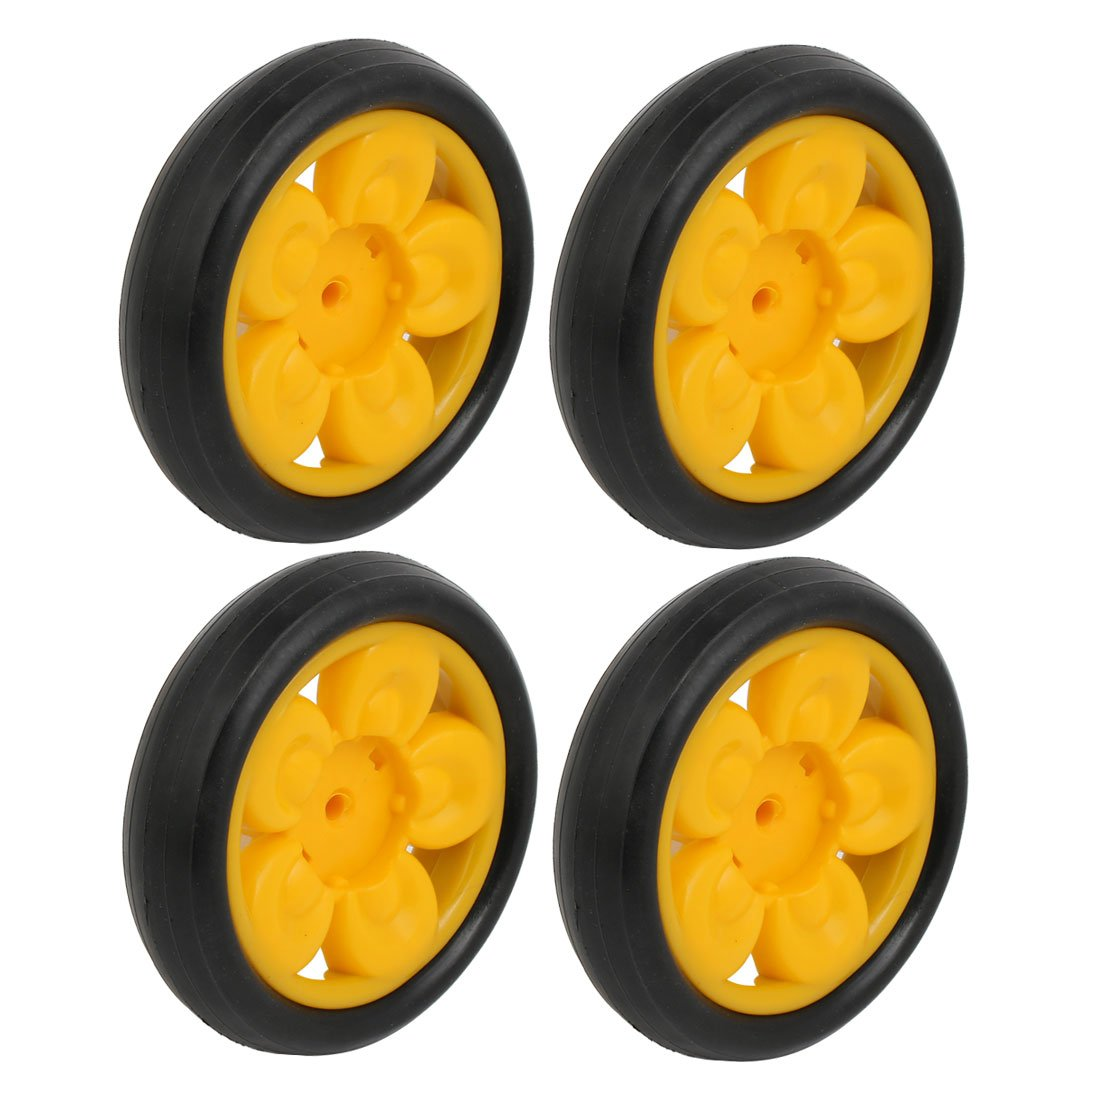 uxcell 110mm Dia Plastic Single Wheel Pulley Rolling Roller Black Yellow 4pcs